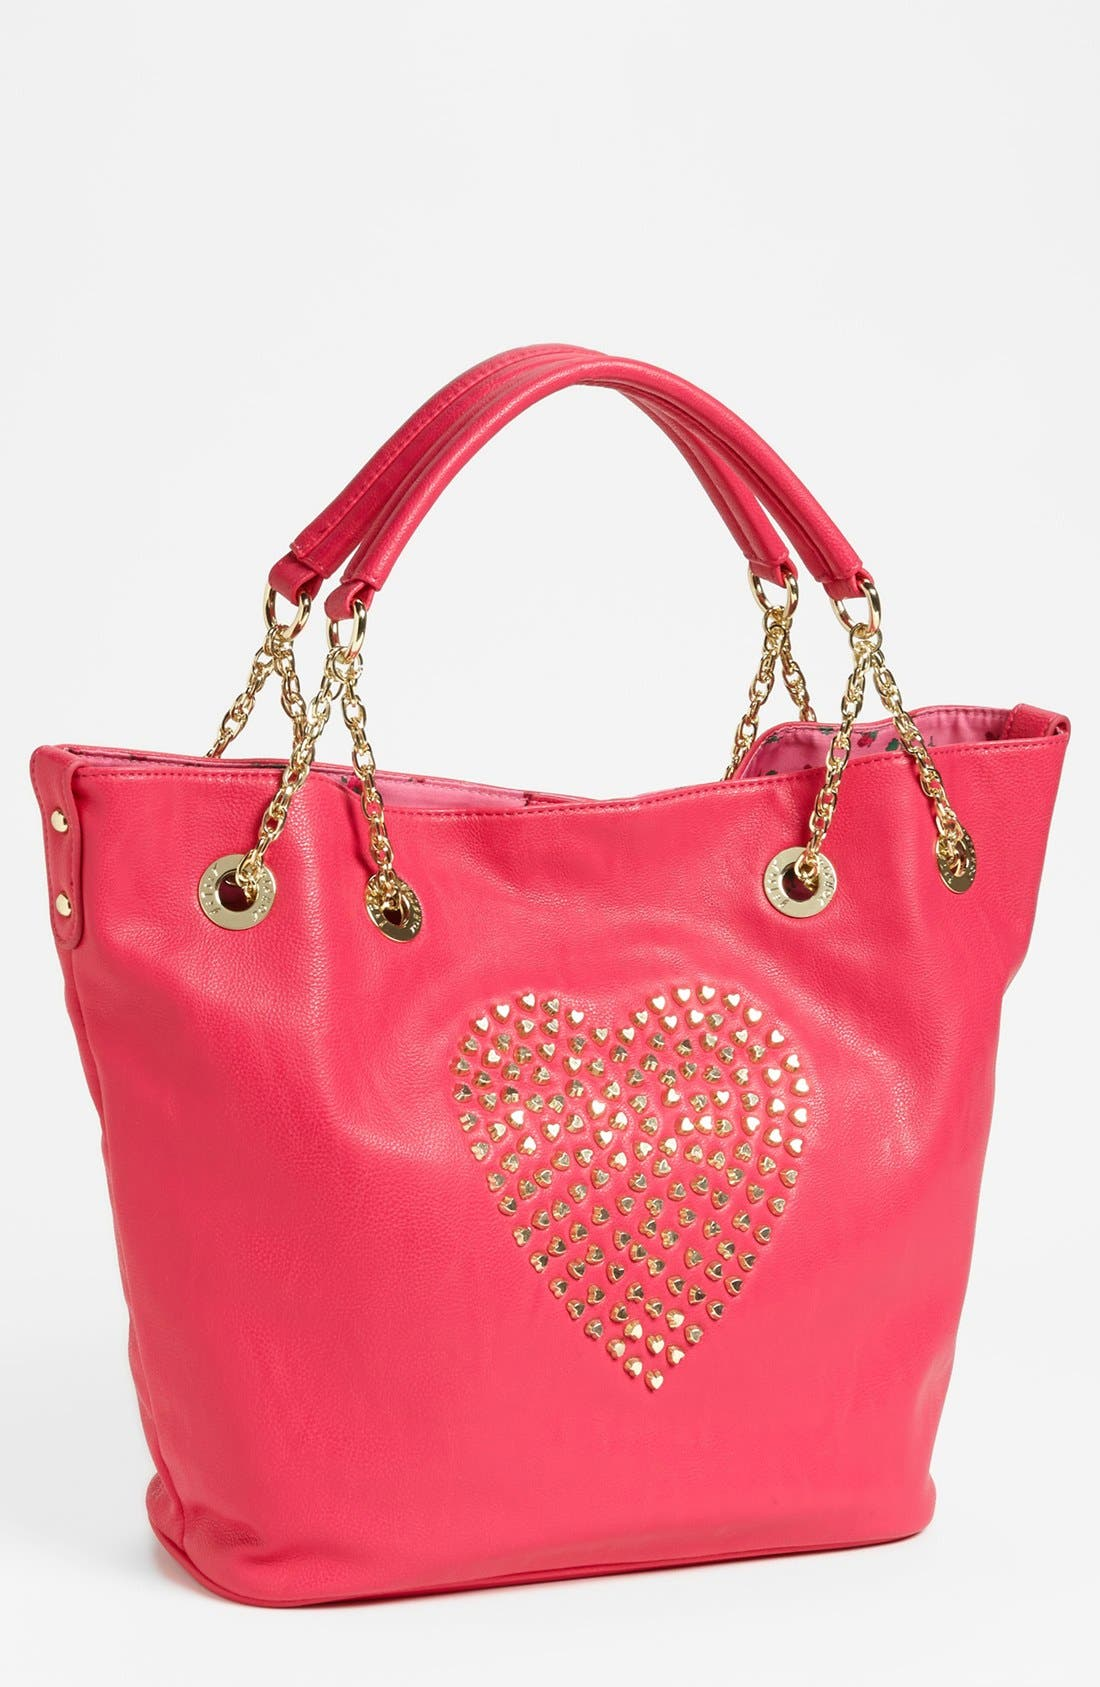 Alternate Image 1 Selected - Betsey Johnson 'Heart Attack' Tote